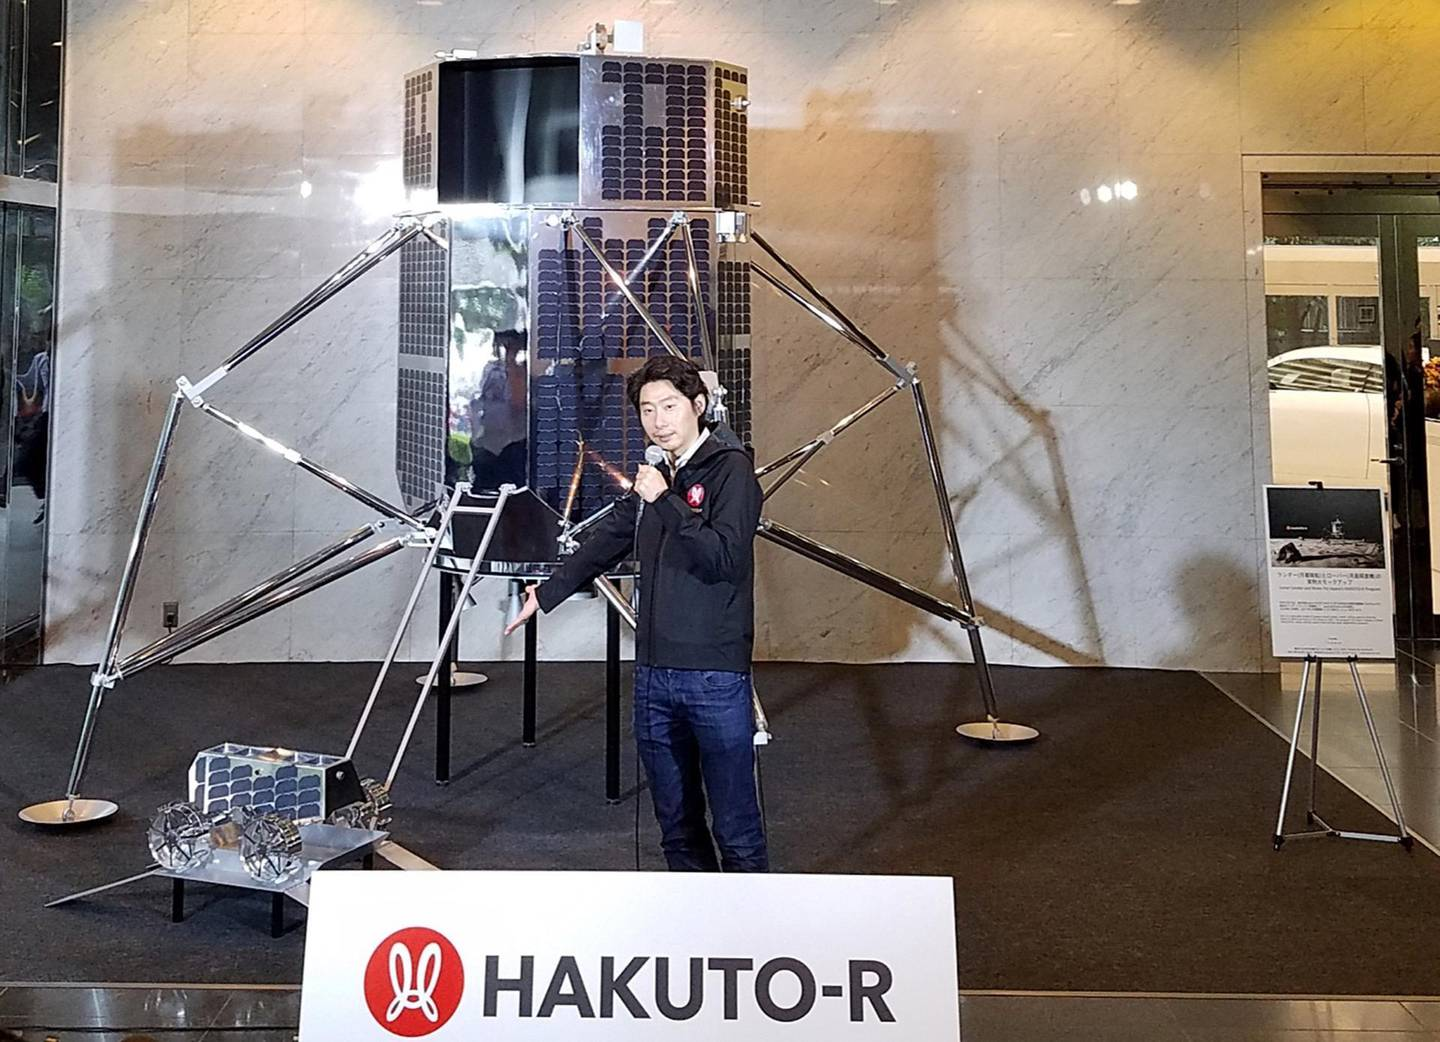 Takeshi Hakamada, CEO of Japanese firm ispace, holds a press conference to explain about the ipsace lunar lander and rover of its lunar programme HAKUTO-R in Tokyo on September 26, 2018. - A Japanese start-up said on September 26 it has signed with Elon Musk's SpaceX for two exploration projects to send spacecraft to the moon. Japan's ispace, a private lunar exploration company, will send its lunar lander and rovers in mid-2020 and mid-2021 on a SpaceX's rocket. (Photo by Natsuko FUKUE / AFP)